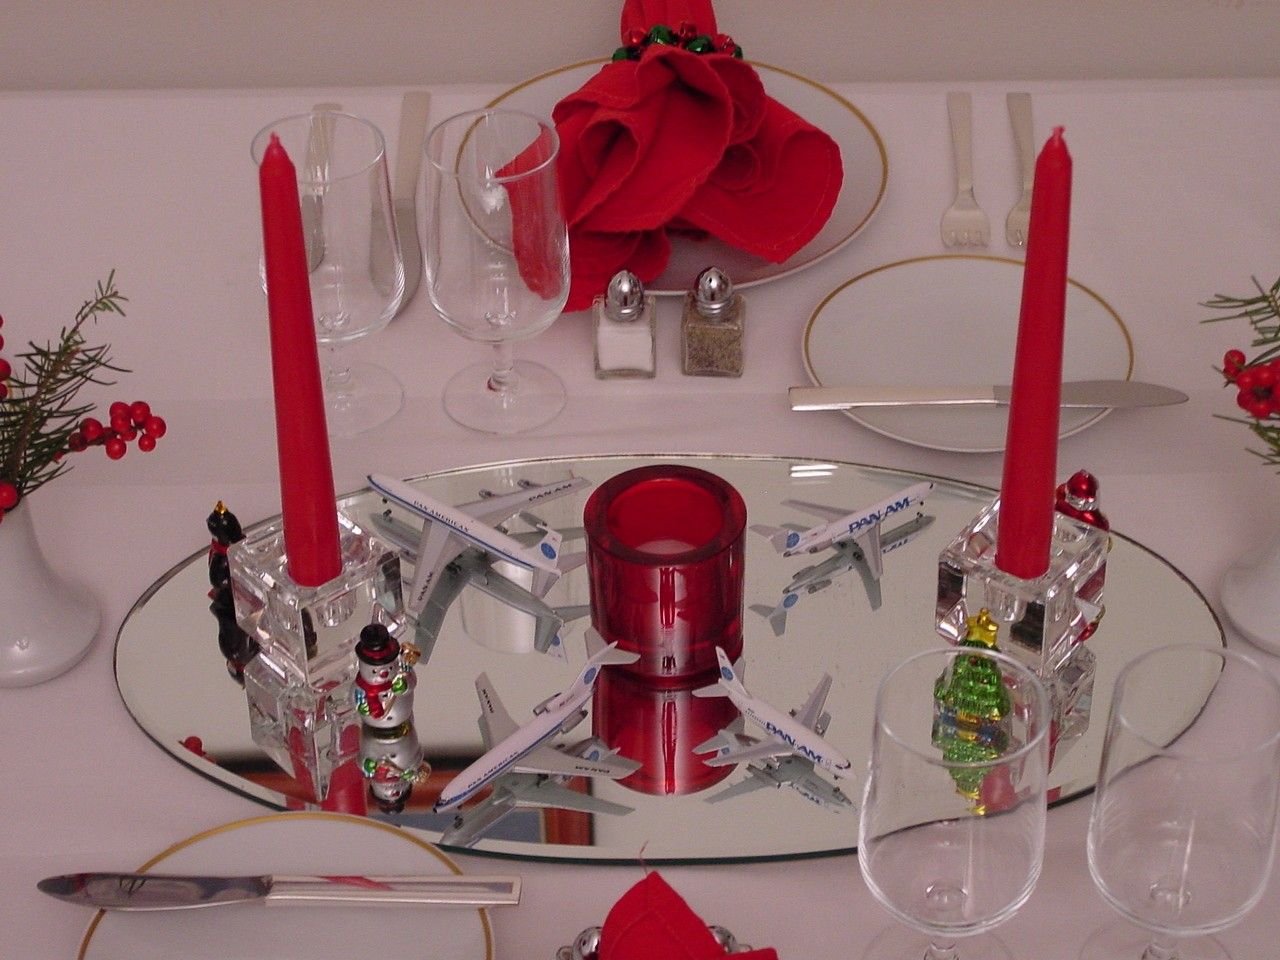 Mini models and red candles are the center piece for this dinner setting with 1970s 'Gold Rim' china.